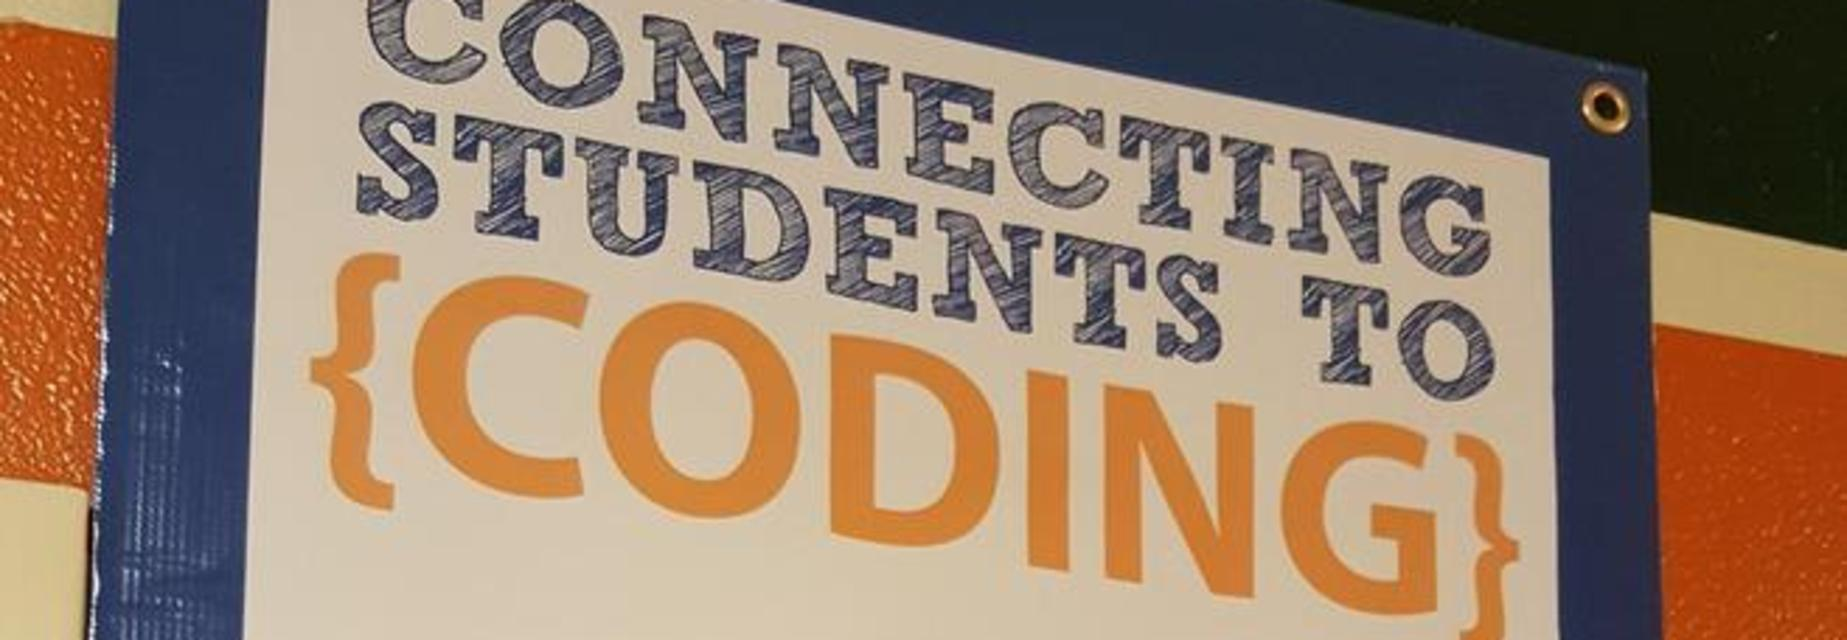 Alton Memorial Jr High is Connecting students to {CODING} via CODE / INTERACTIVE